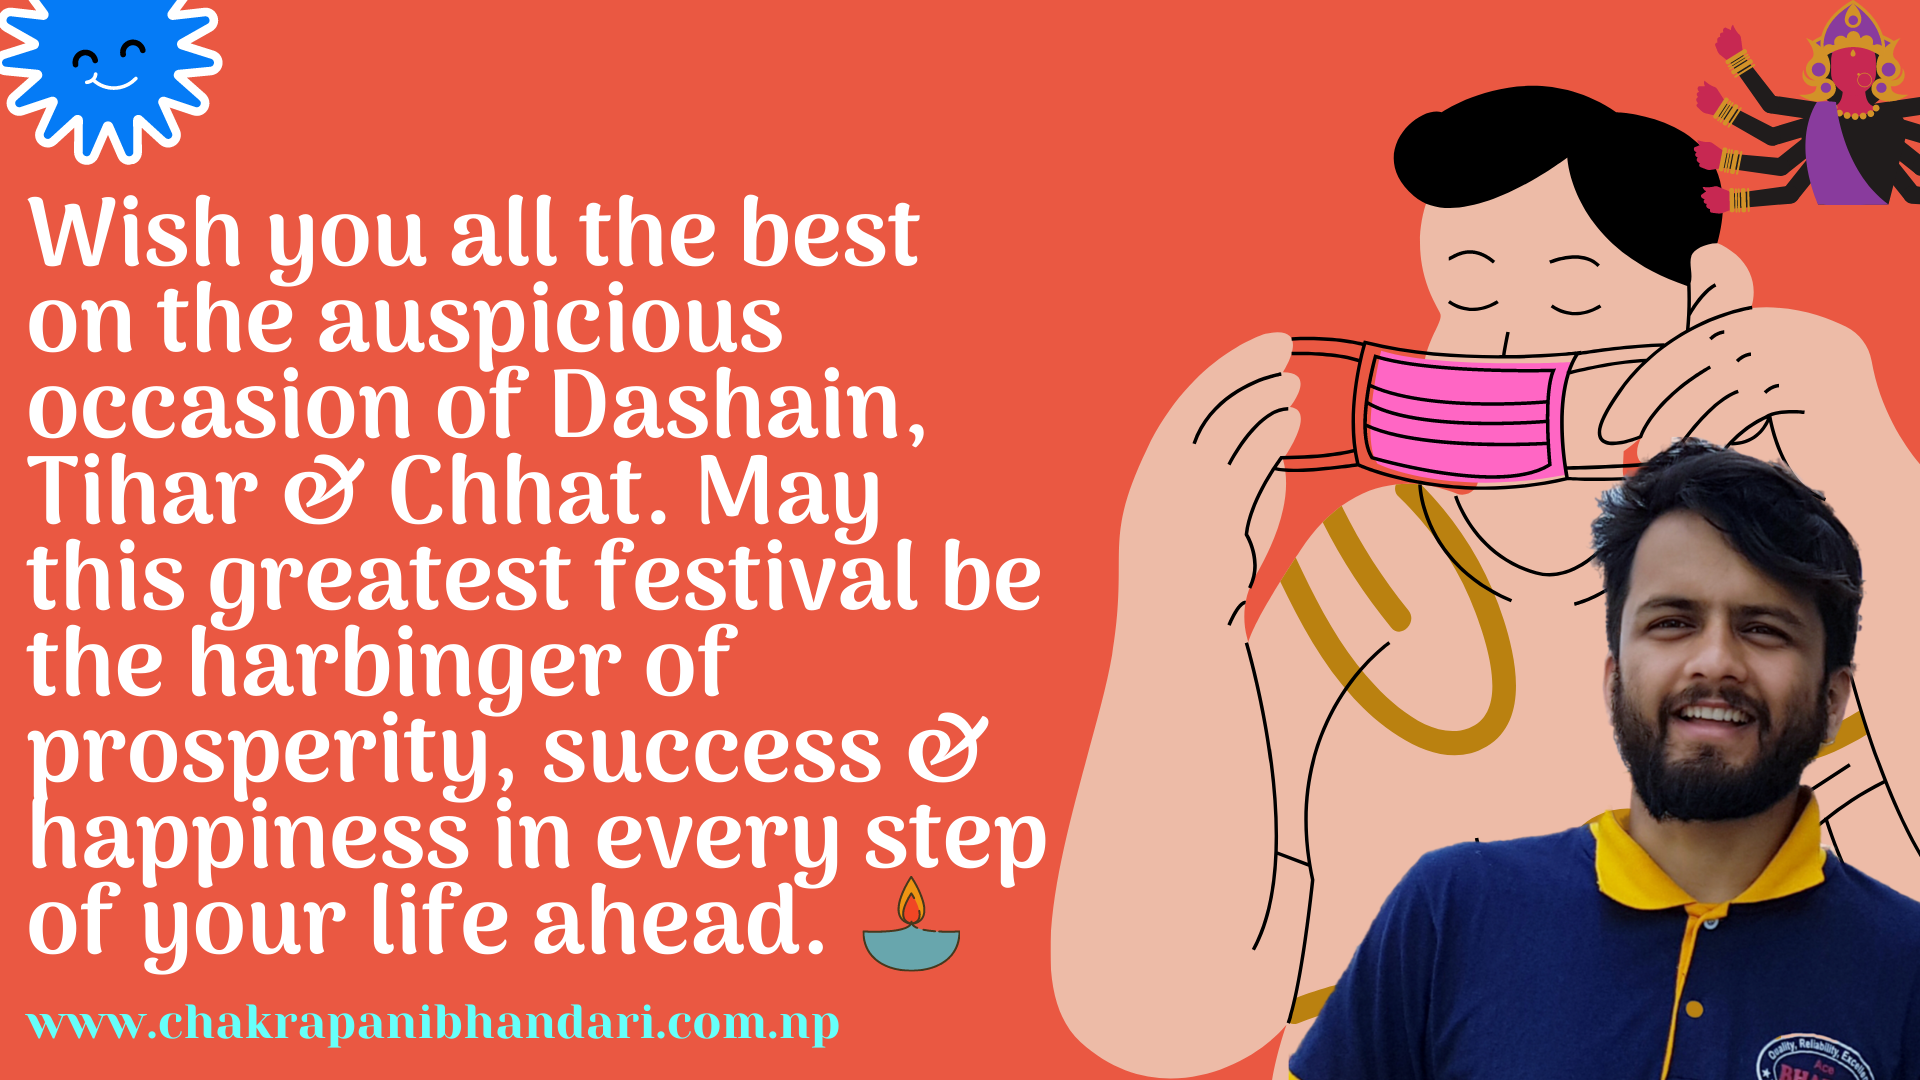 Happy Dashain Tihar and Chhat